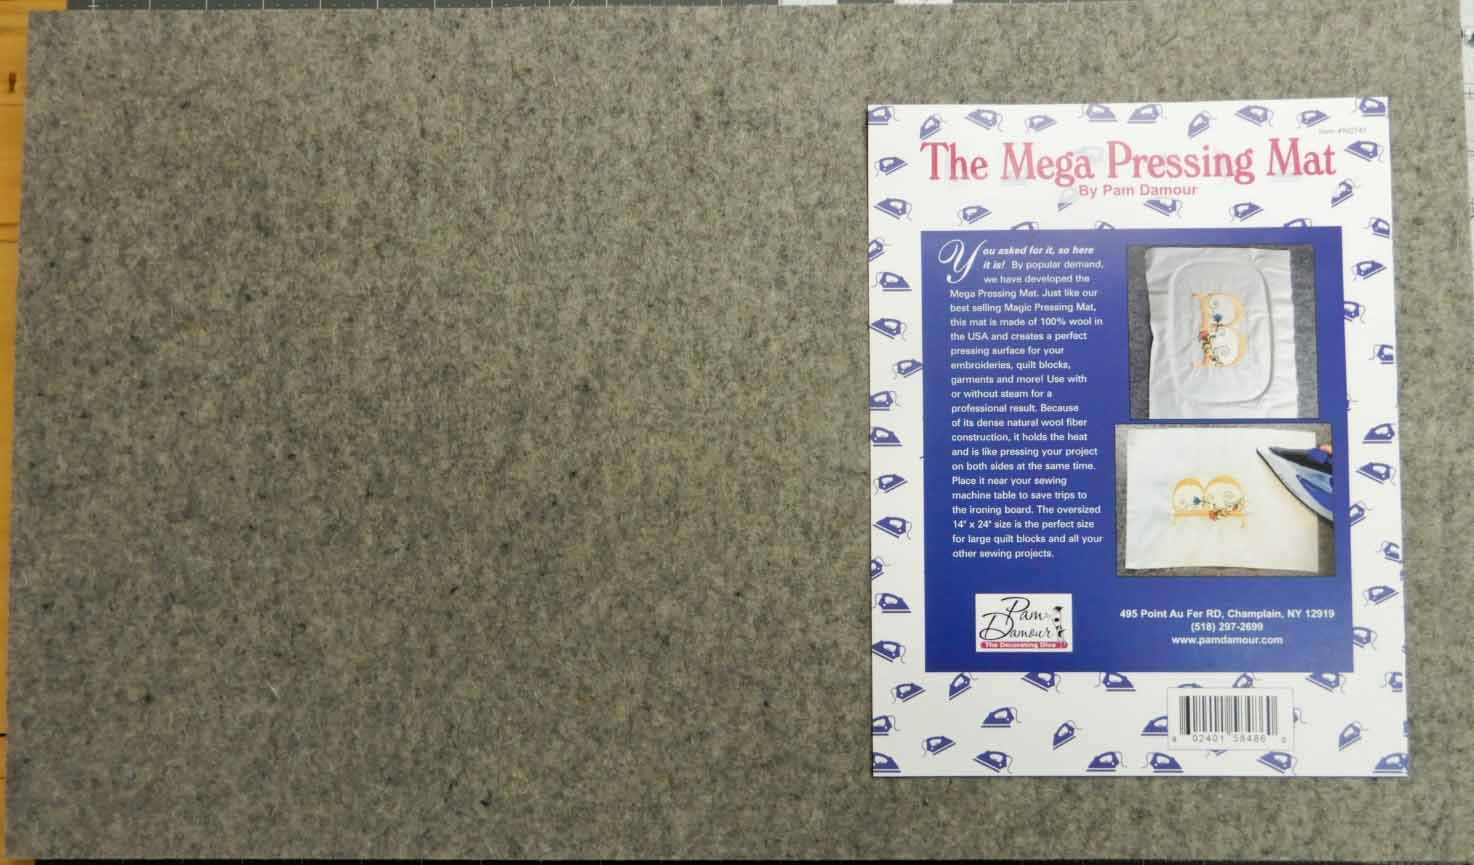 The Magic Pressing Mat 14 x 24